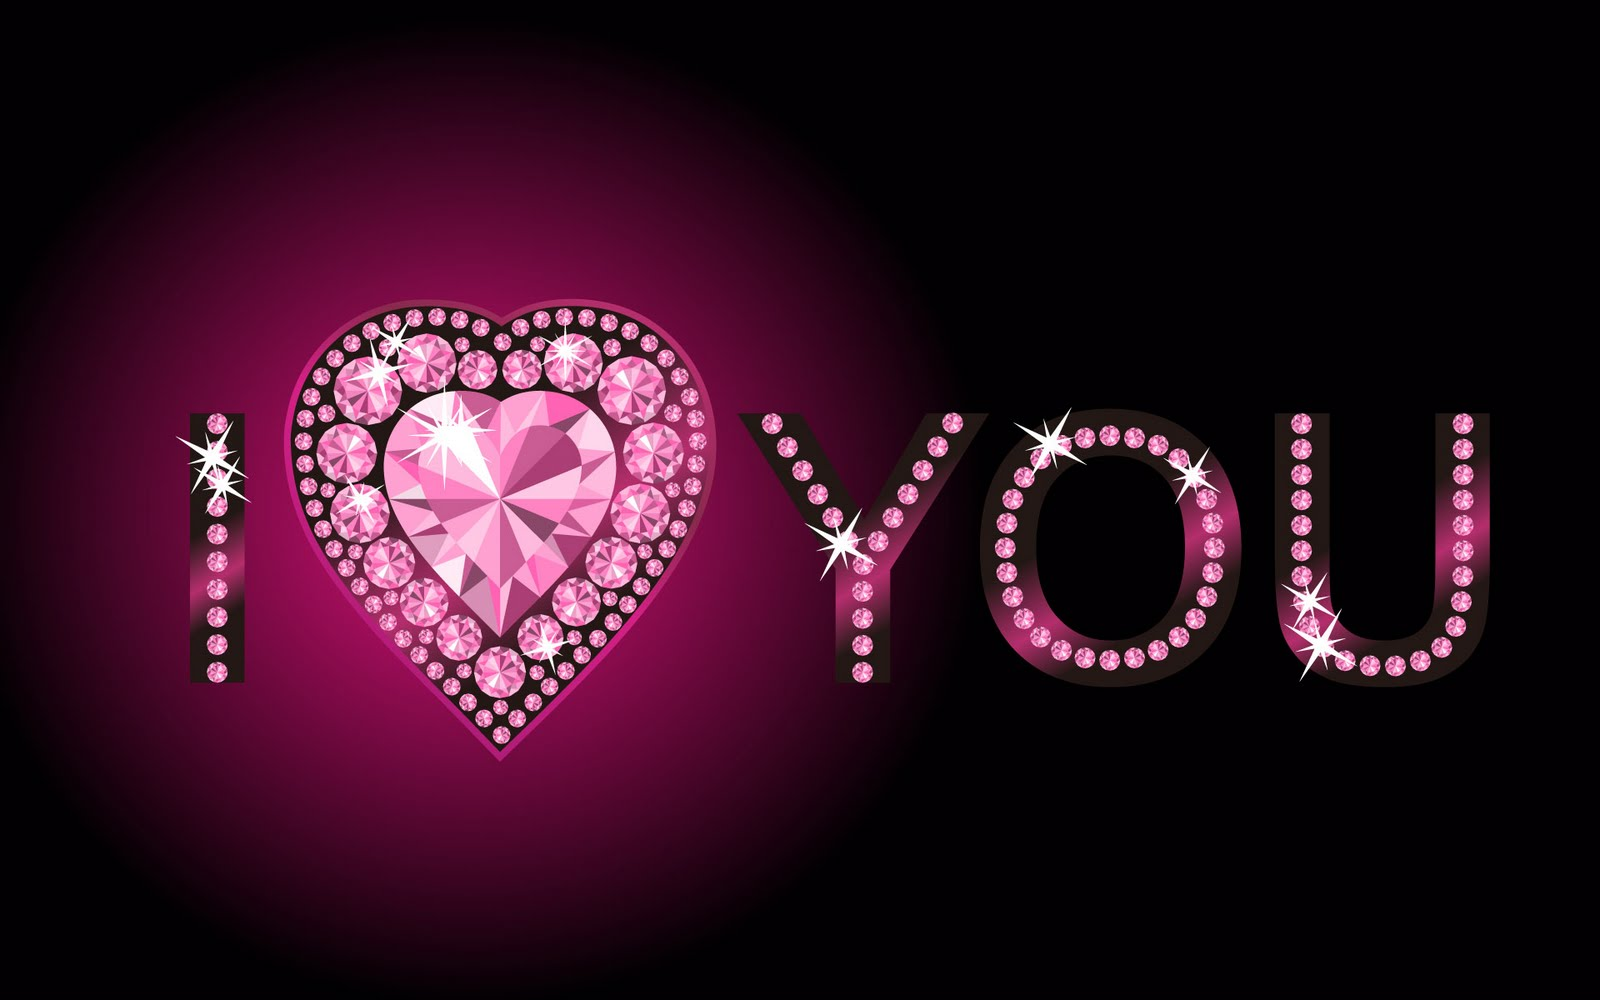 Love U Wallpaper With Quotes : I Love You With Diamond Decoration Quotes Wallpapers